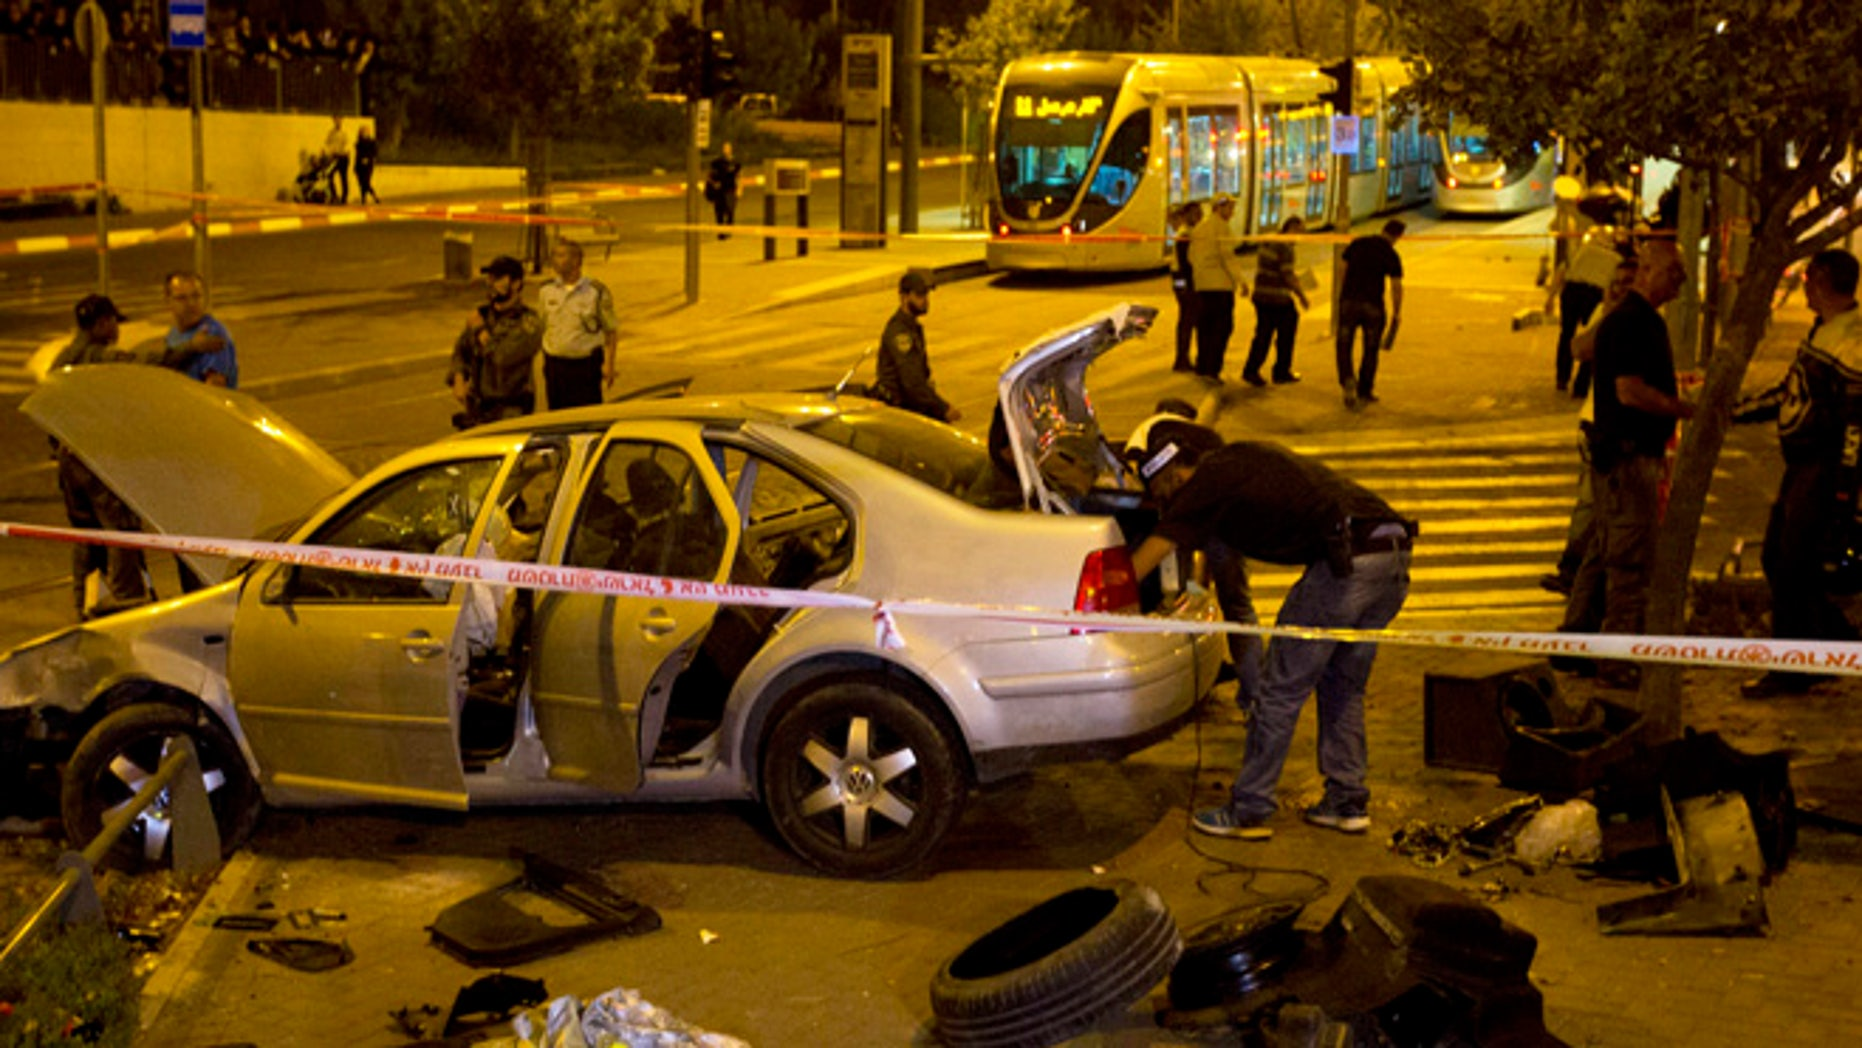 Oct. 22, 2014: Israeli police officers inspect a car at the scene of an attack in Jerusalem. A Palestinian motorist with a history of anti-Israel violence slammed his car into a crowded train station in Jerusalem on Wednesday, killing a three-month-old baby girl and wounding several people in what police called a terror attack.